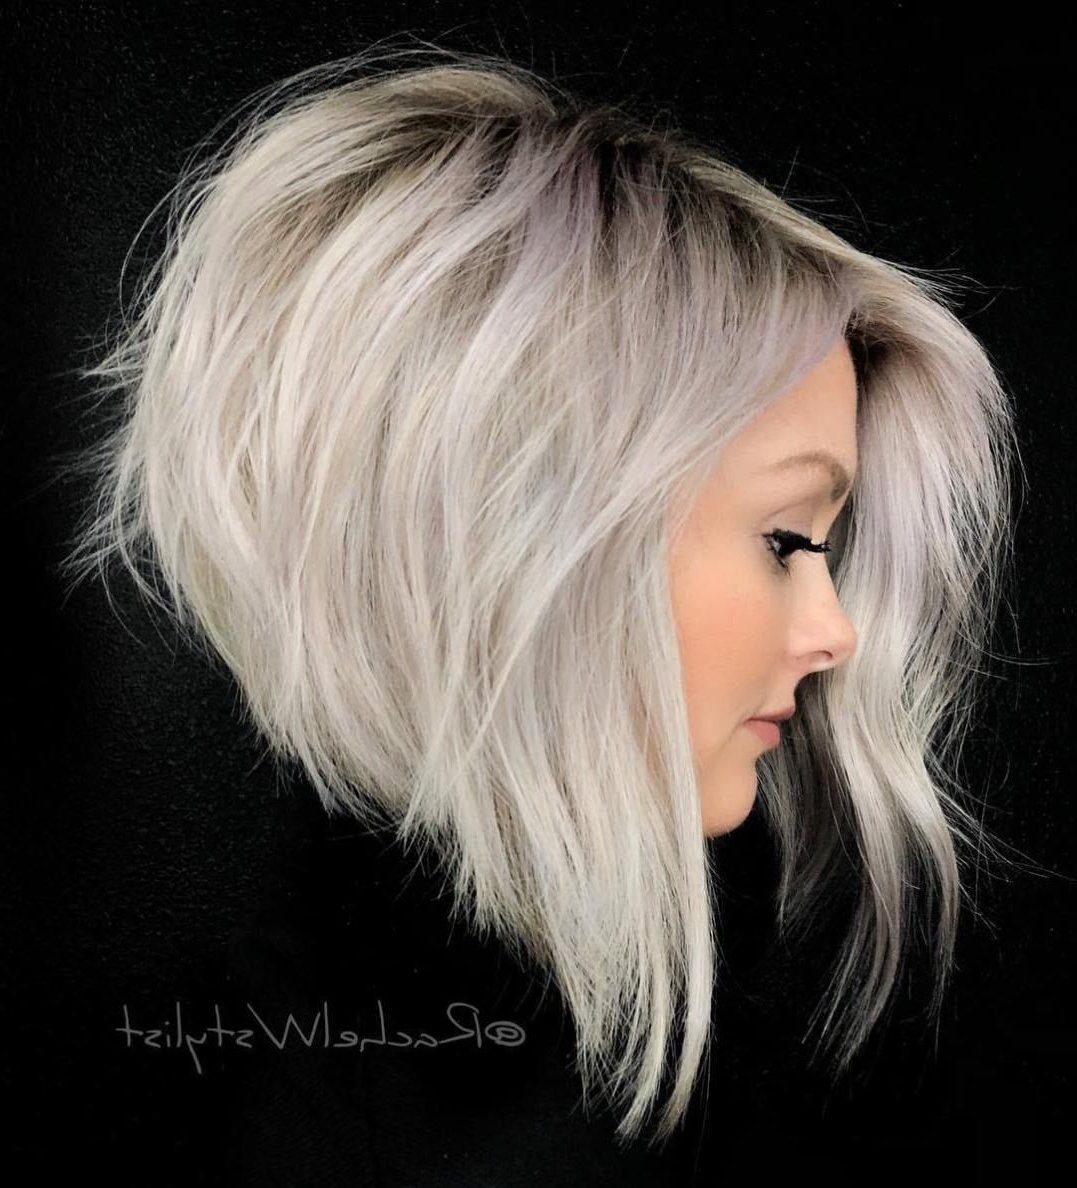 70 Overwhelming Ideas For Short Choppy Haircuts | Diy Inside Steeply Angled Razored Asymmetrical Bob Hairstyles (View 7 of 20)